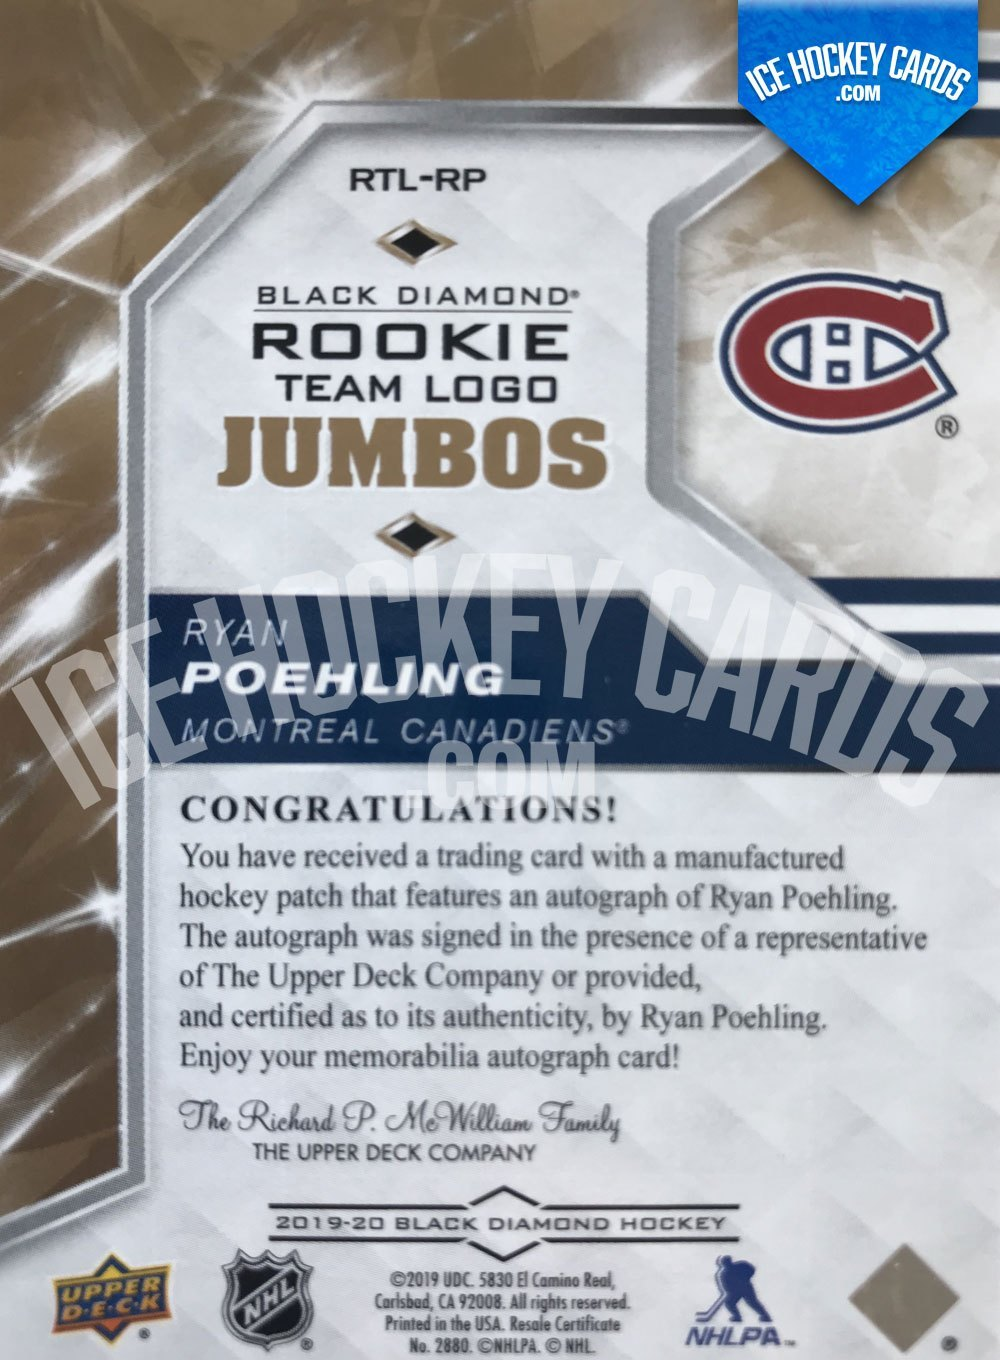 Upper Deck - Black Diamond 19-20 - Ryan Poehling Team Logo Jumbos Rookie Auto back